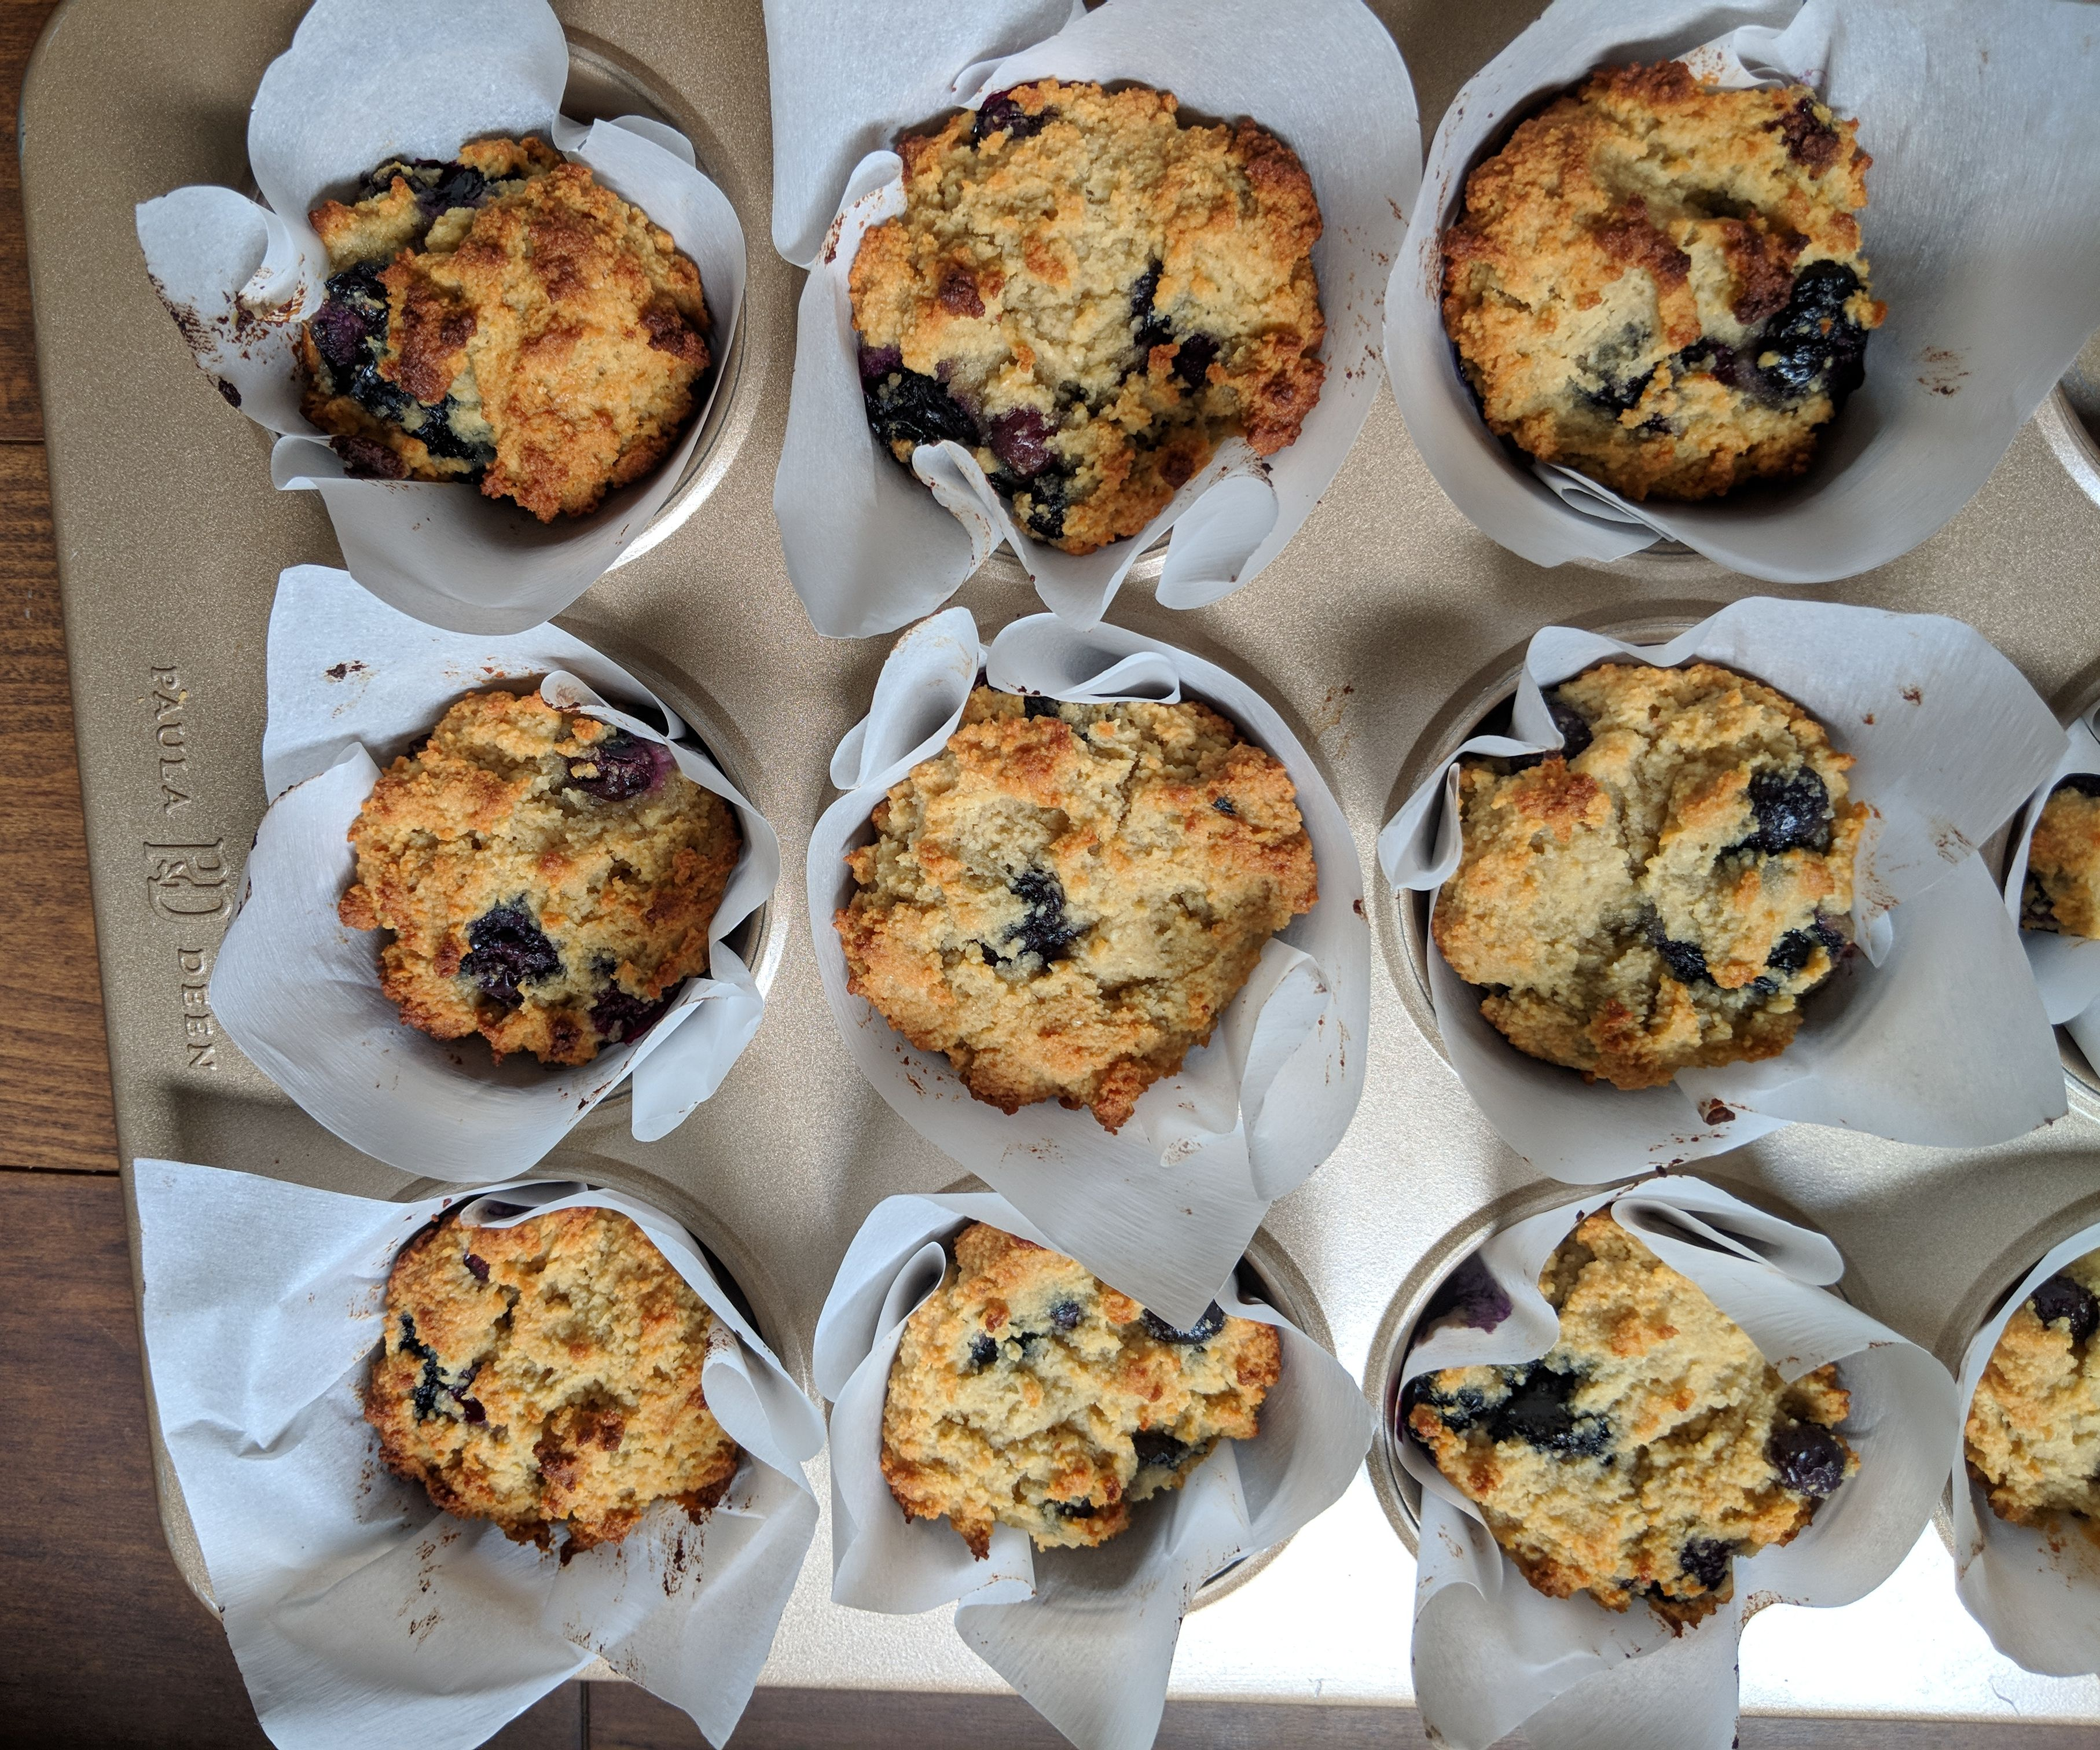 Organic Blueberry Muffins With Strawberry Jam and Coconut Cream